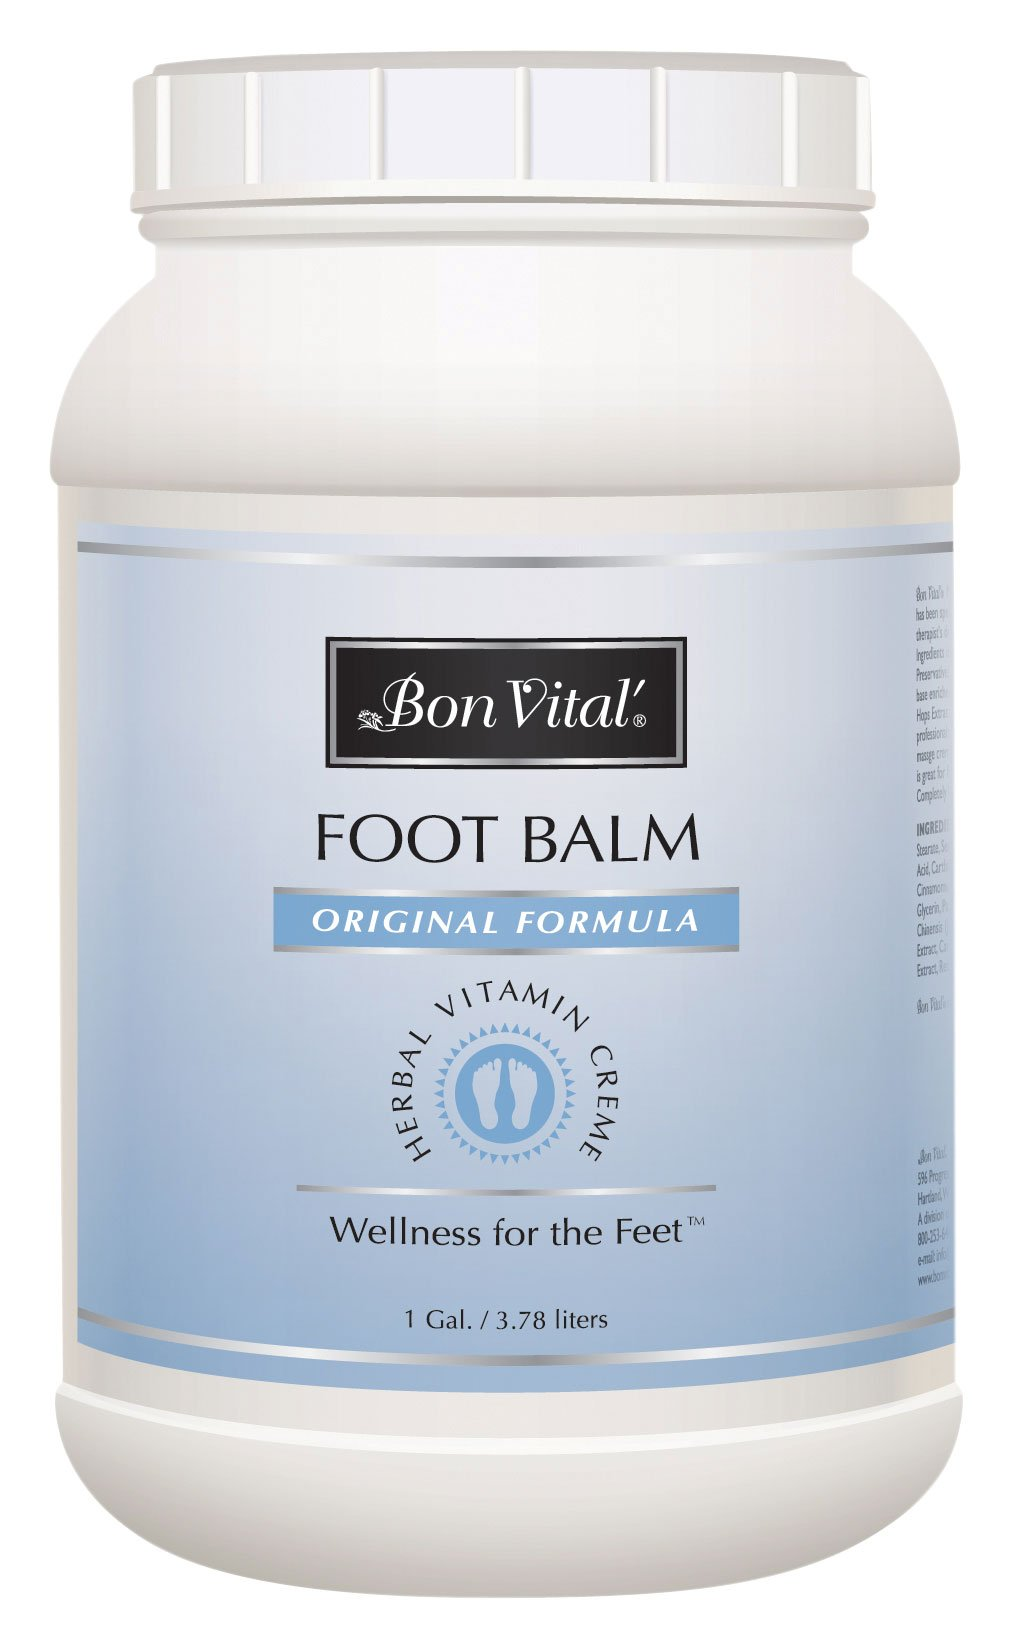 Bon Vital Original Foot Balm, 1 Gallon Jar